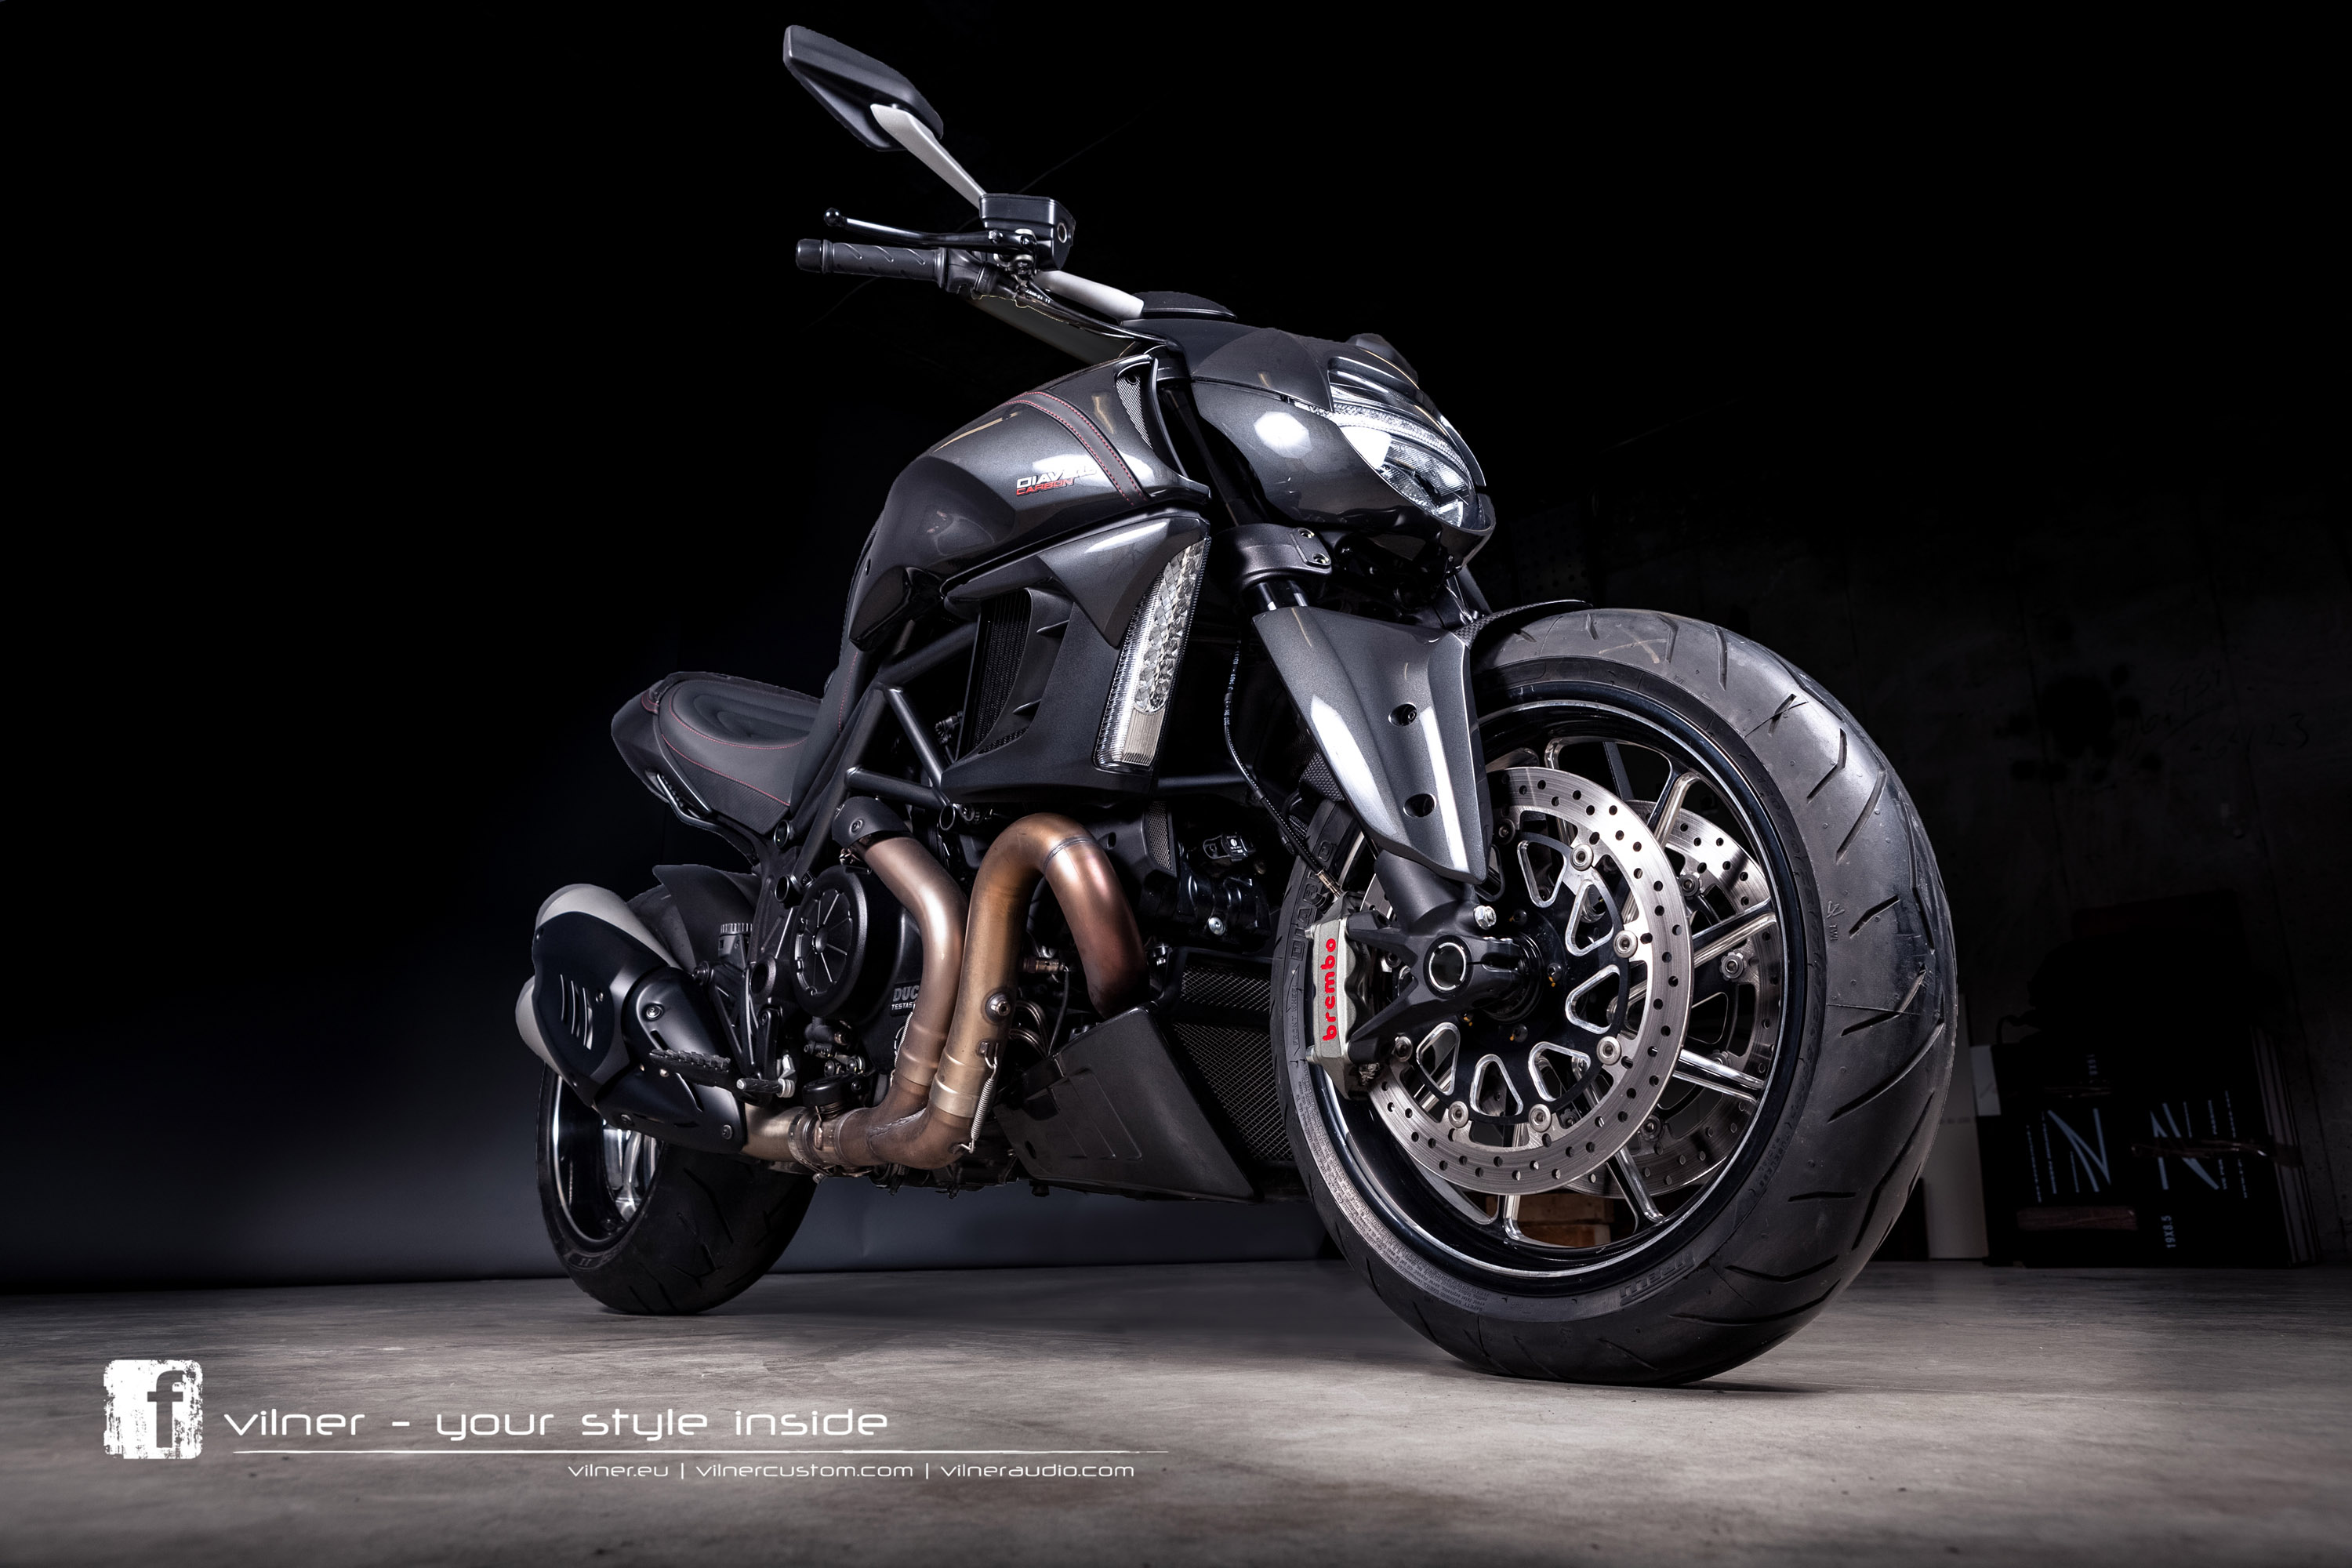 2013 Vilner Ducati Diavel superbike superbikes bike engine ...